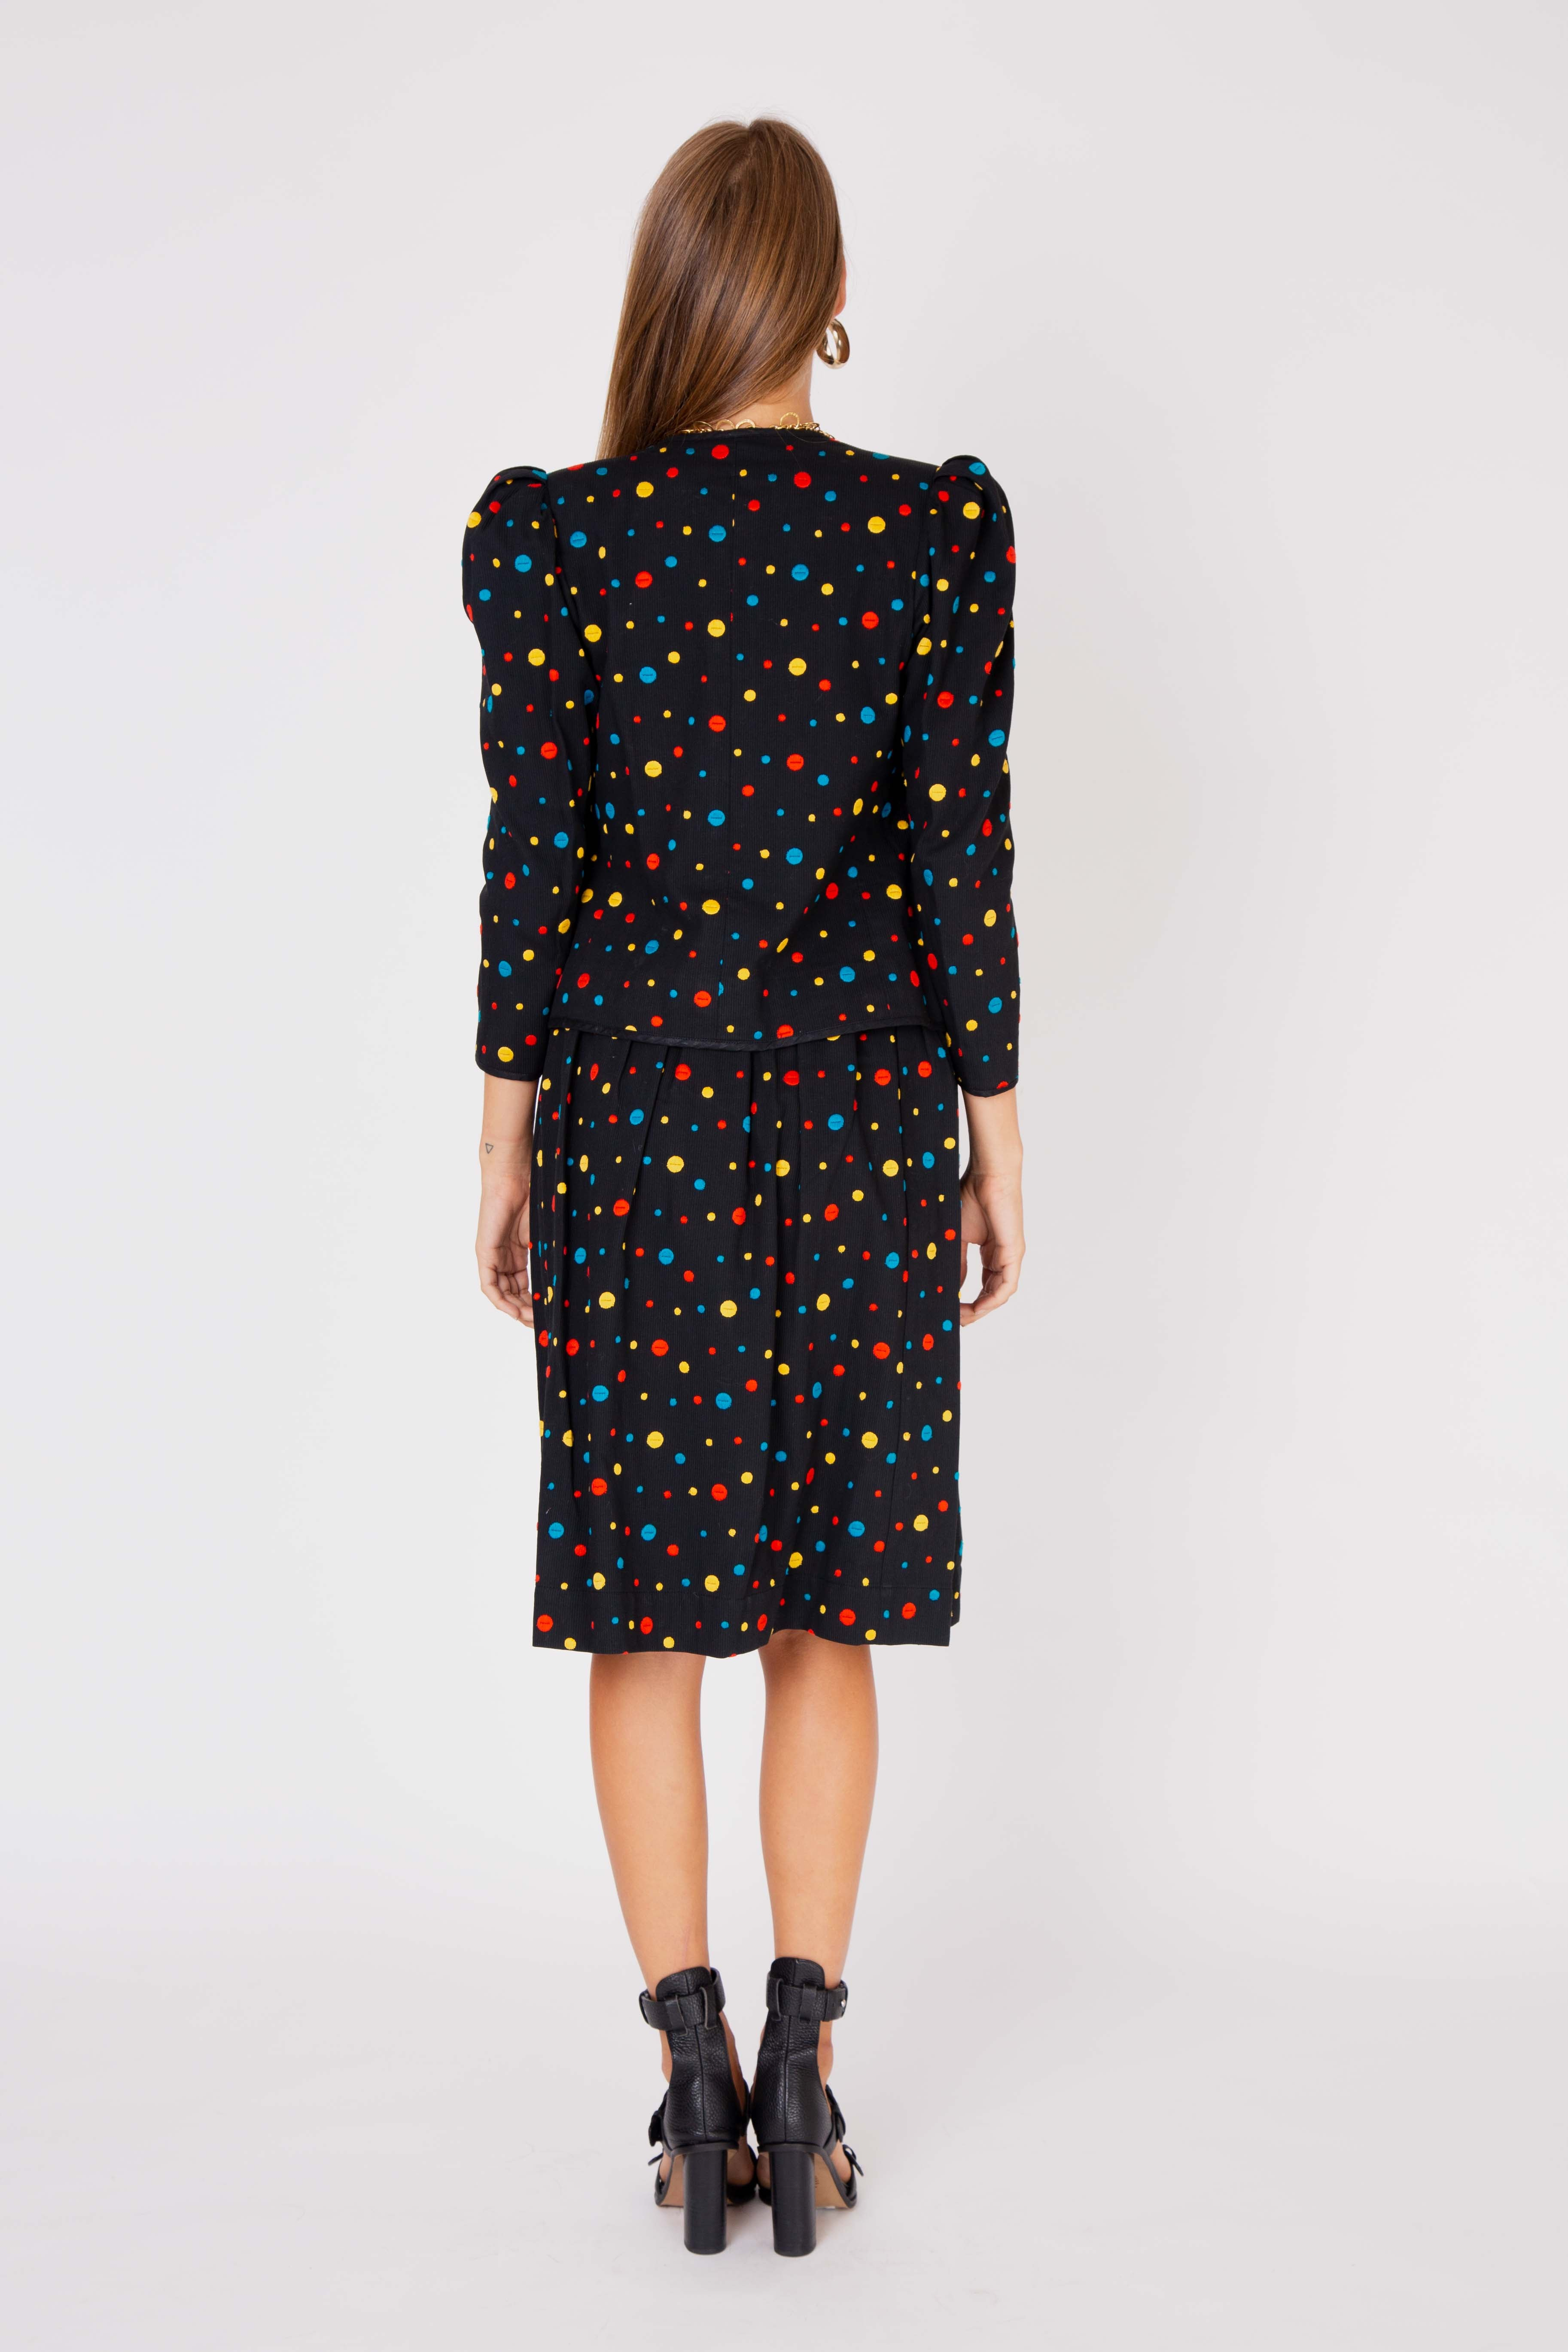 Yves Saint Laurent<br>1970's embroidered polka dot three piece ensemble